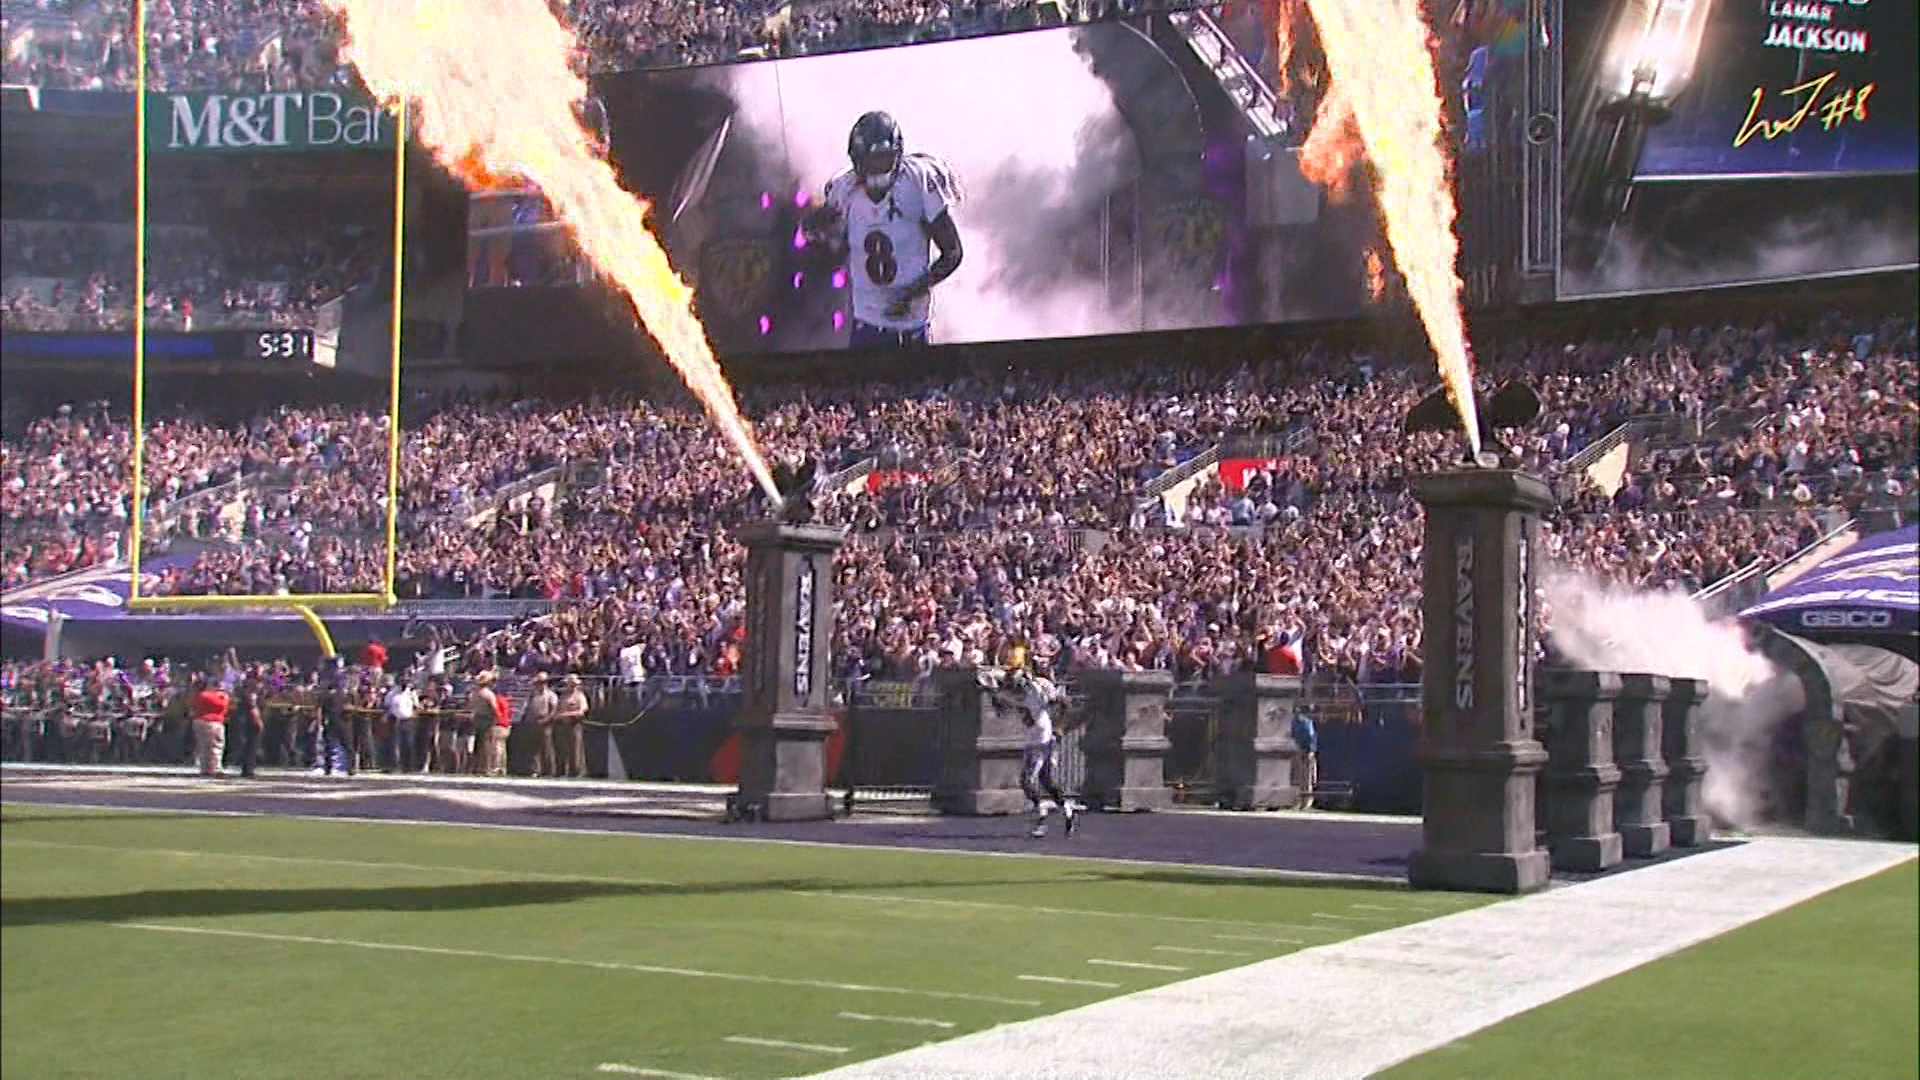 Lamar Jackson leads the Ravens onto field for home opener